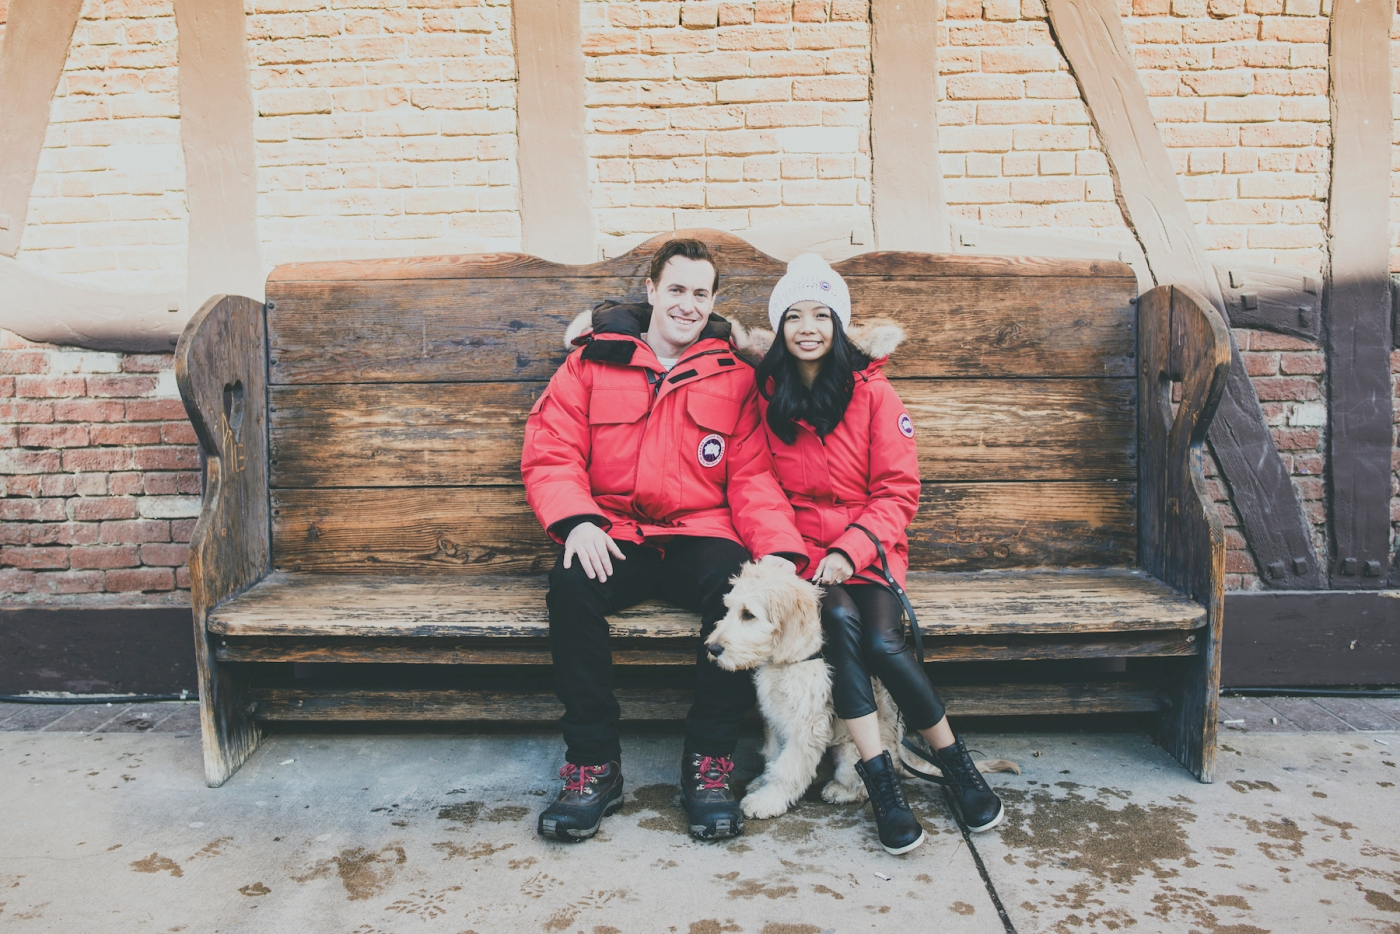 leavenworth_elopement_by_jane_speleers_photography_seattle_photographer_2017_winter_snow_joy_and_jason_rendezvous_ranch_cashmere_leavenworth_nahahum_canyon_all_rights_reserveddsc_9430